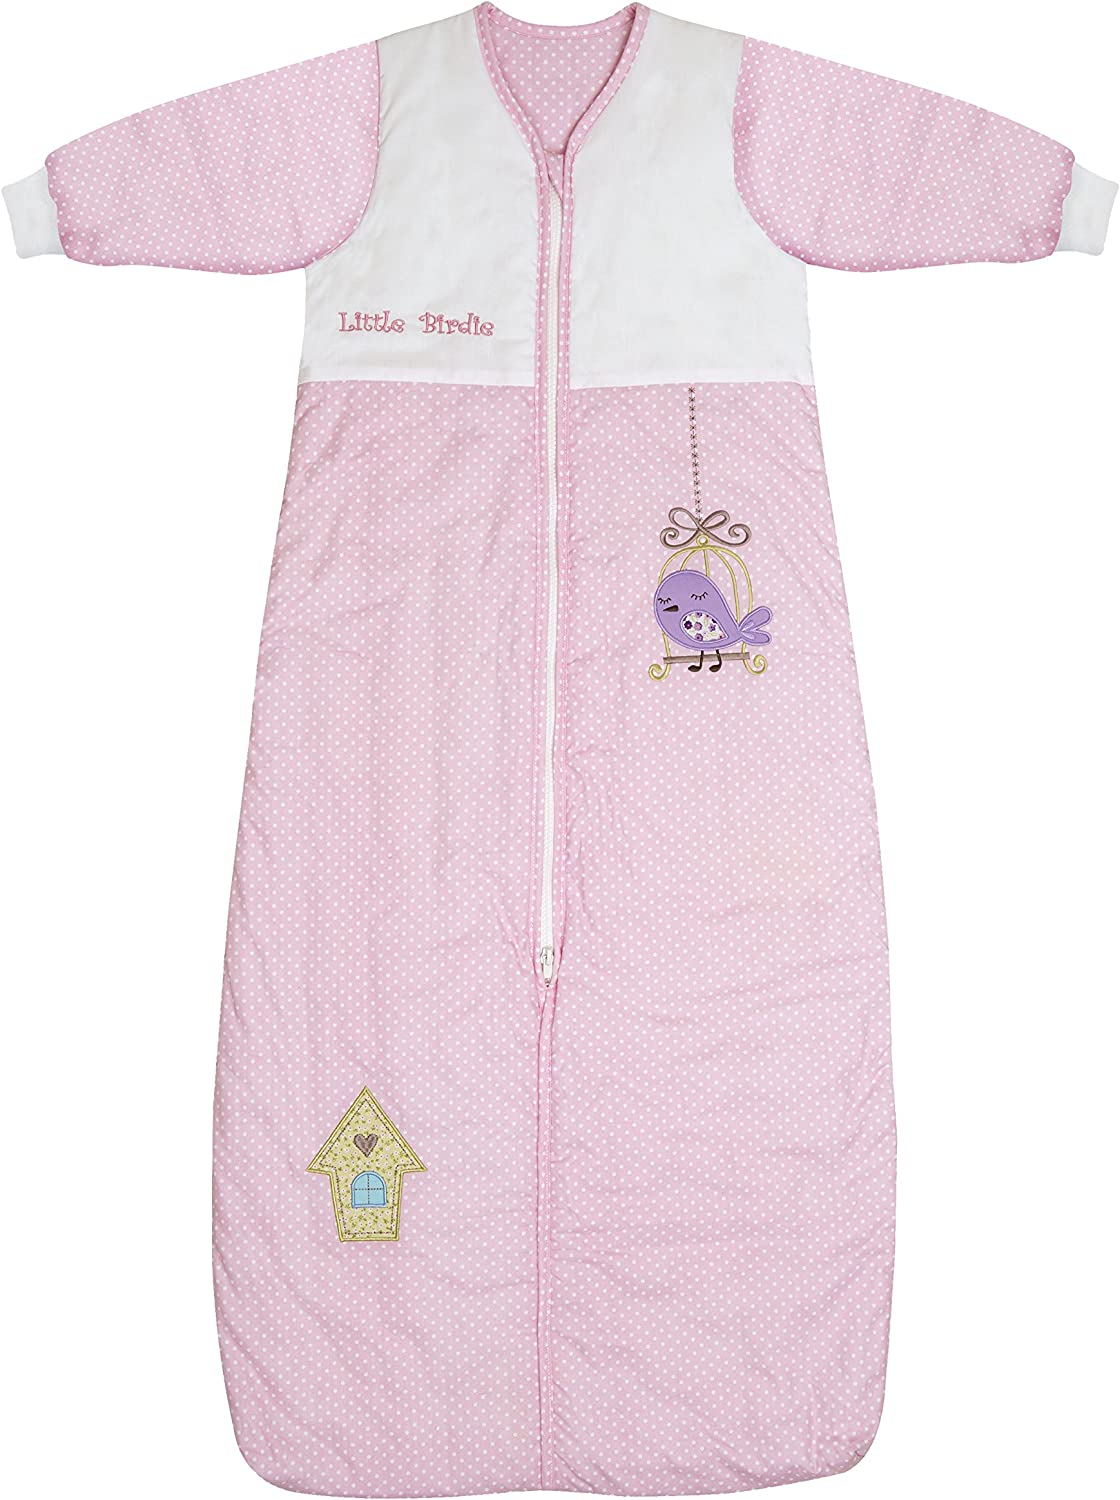 Slumbersafe Winter Sleeping Bag Long Sleeves 3.5 Tog - Little Birdie - various sizes  from birth up to 6 years (18-36 months)